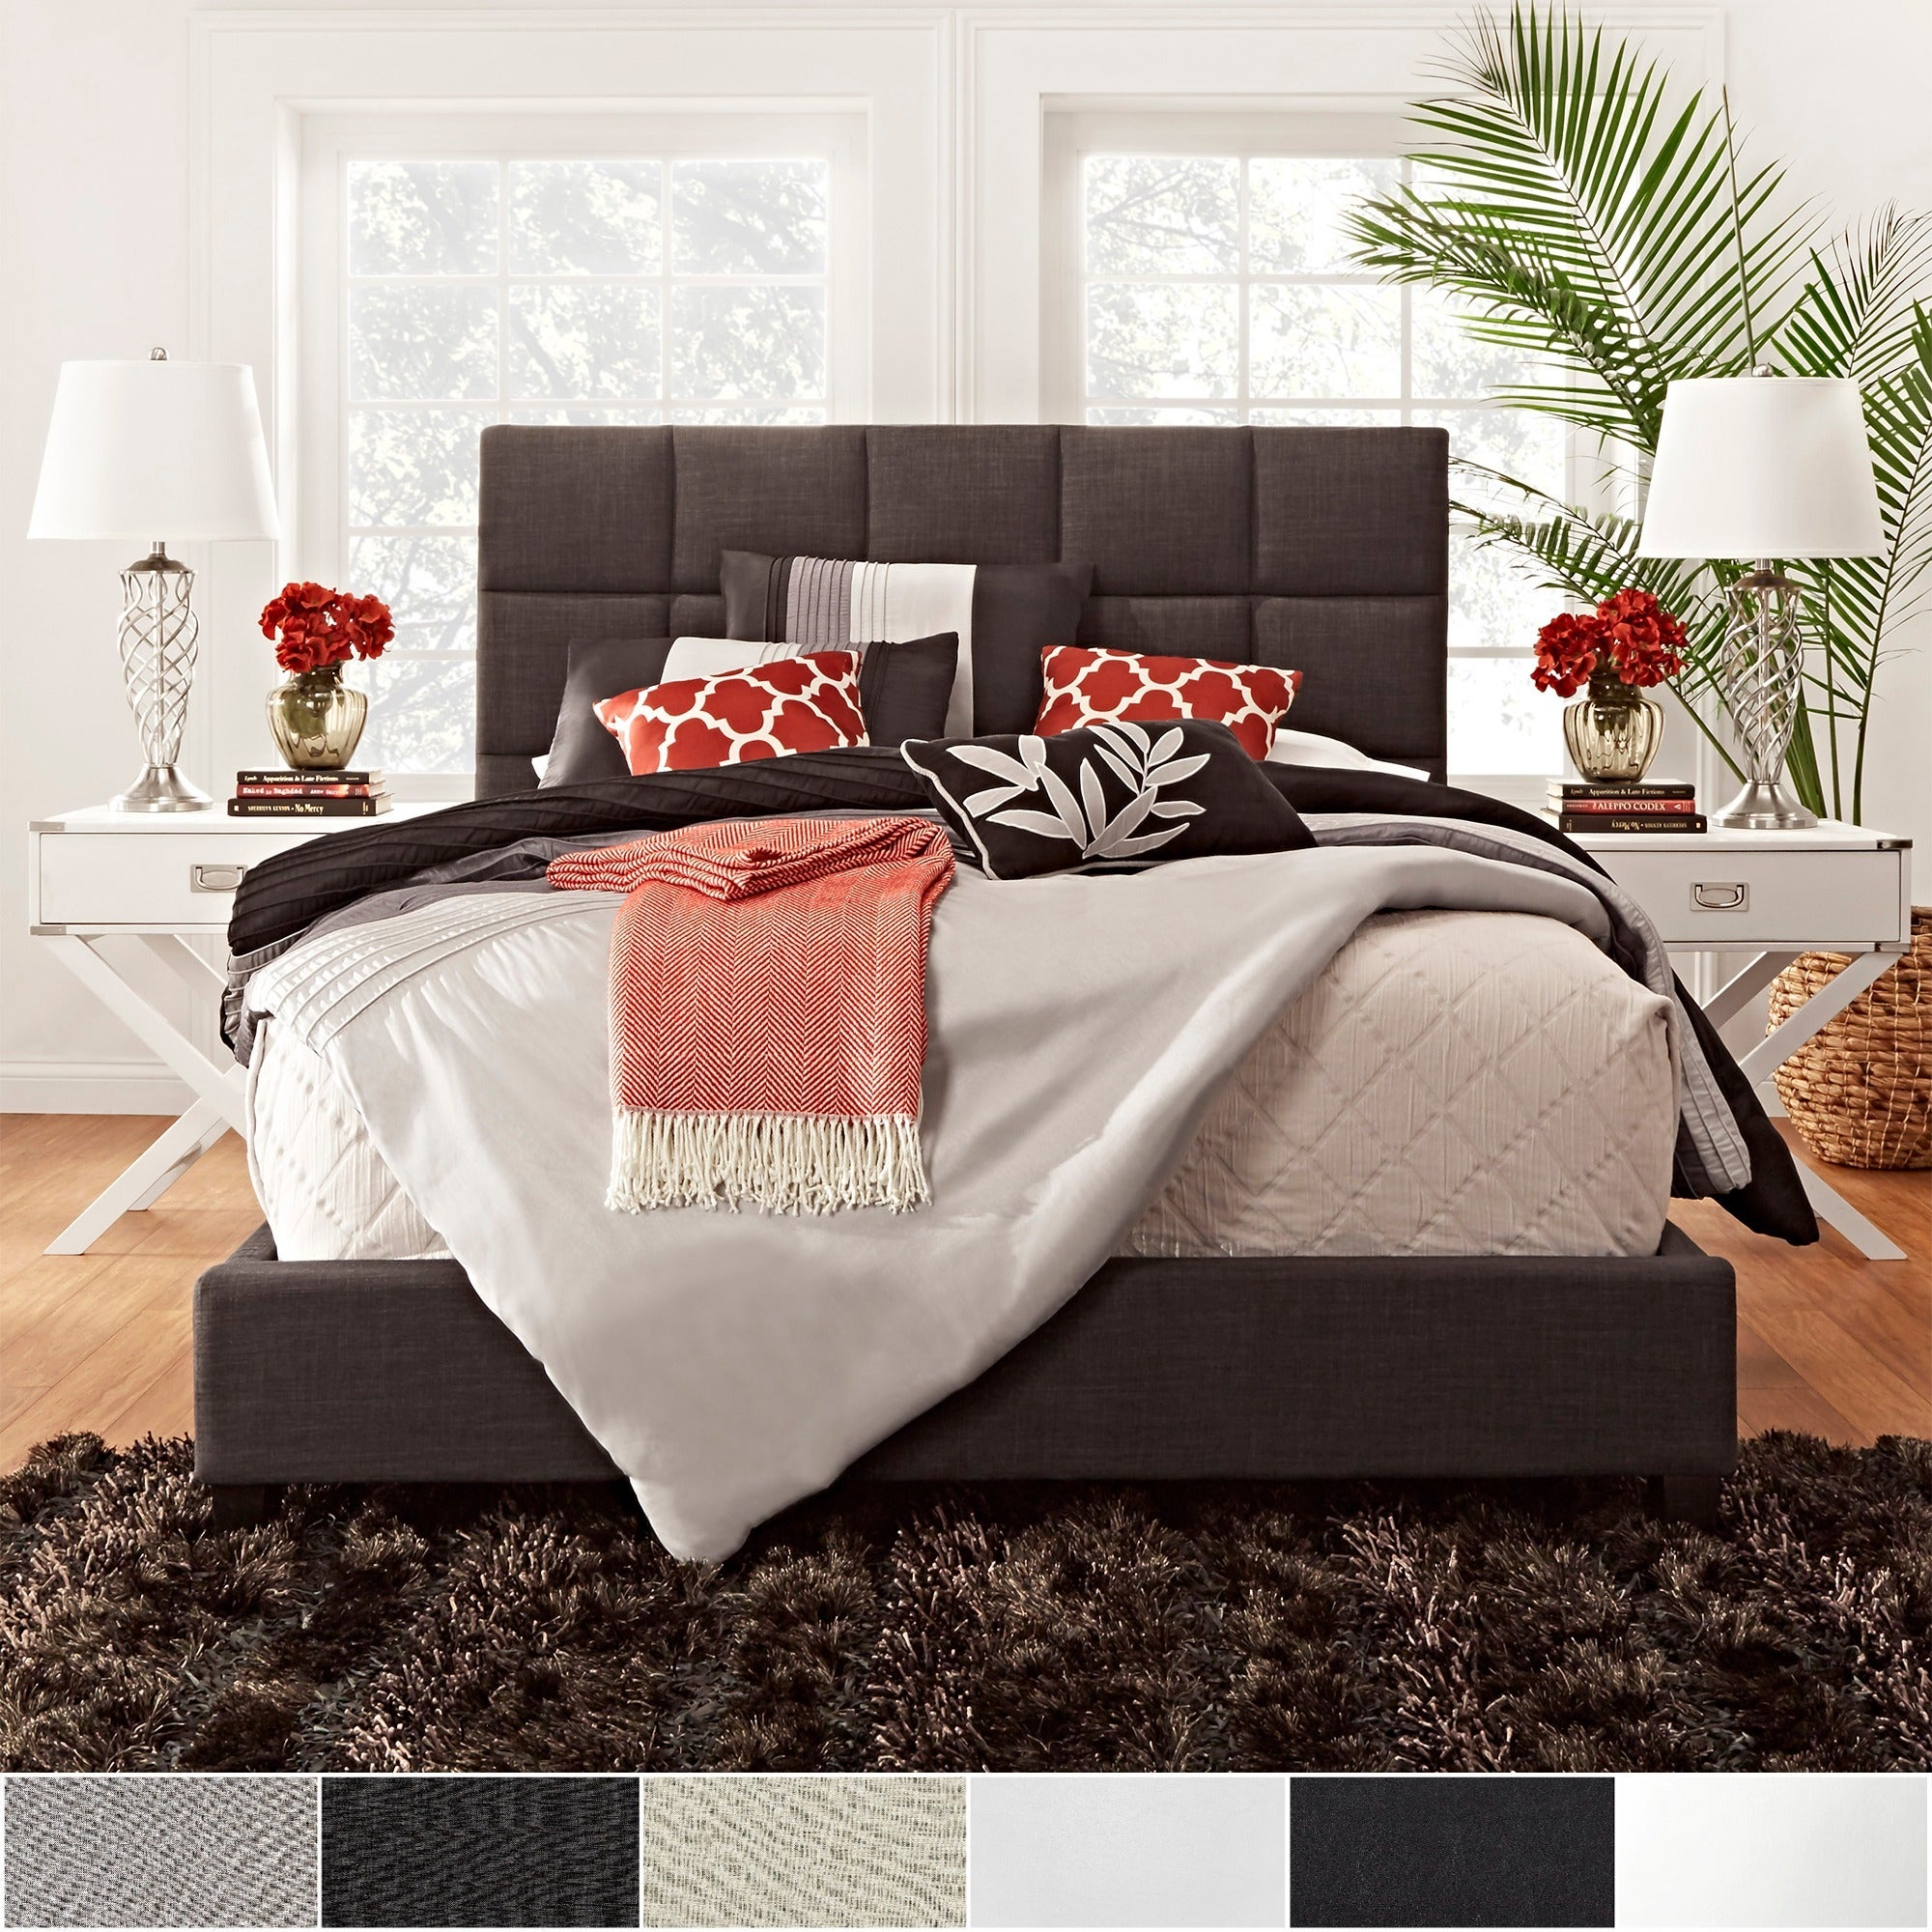 Fenton modern dark brown queen platform bed free shipping today - Fenton Column Upholstered King Size Bed By Inspire Q Modern Sale 702 94 Today 826 99